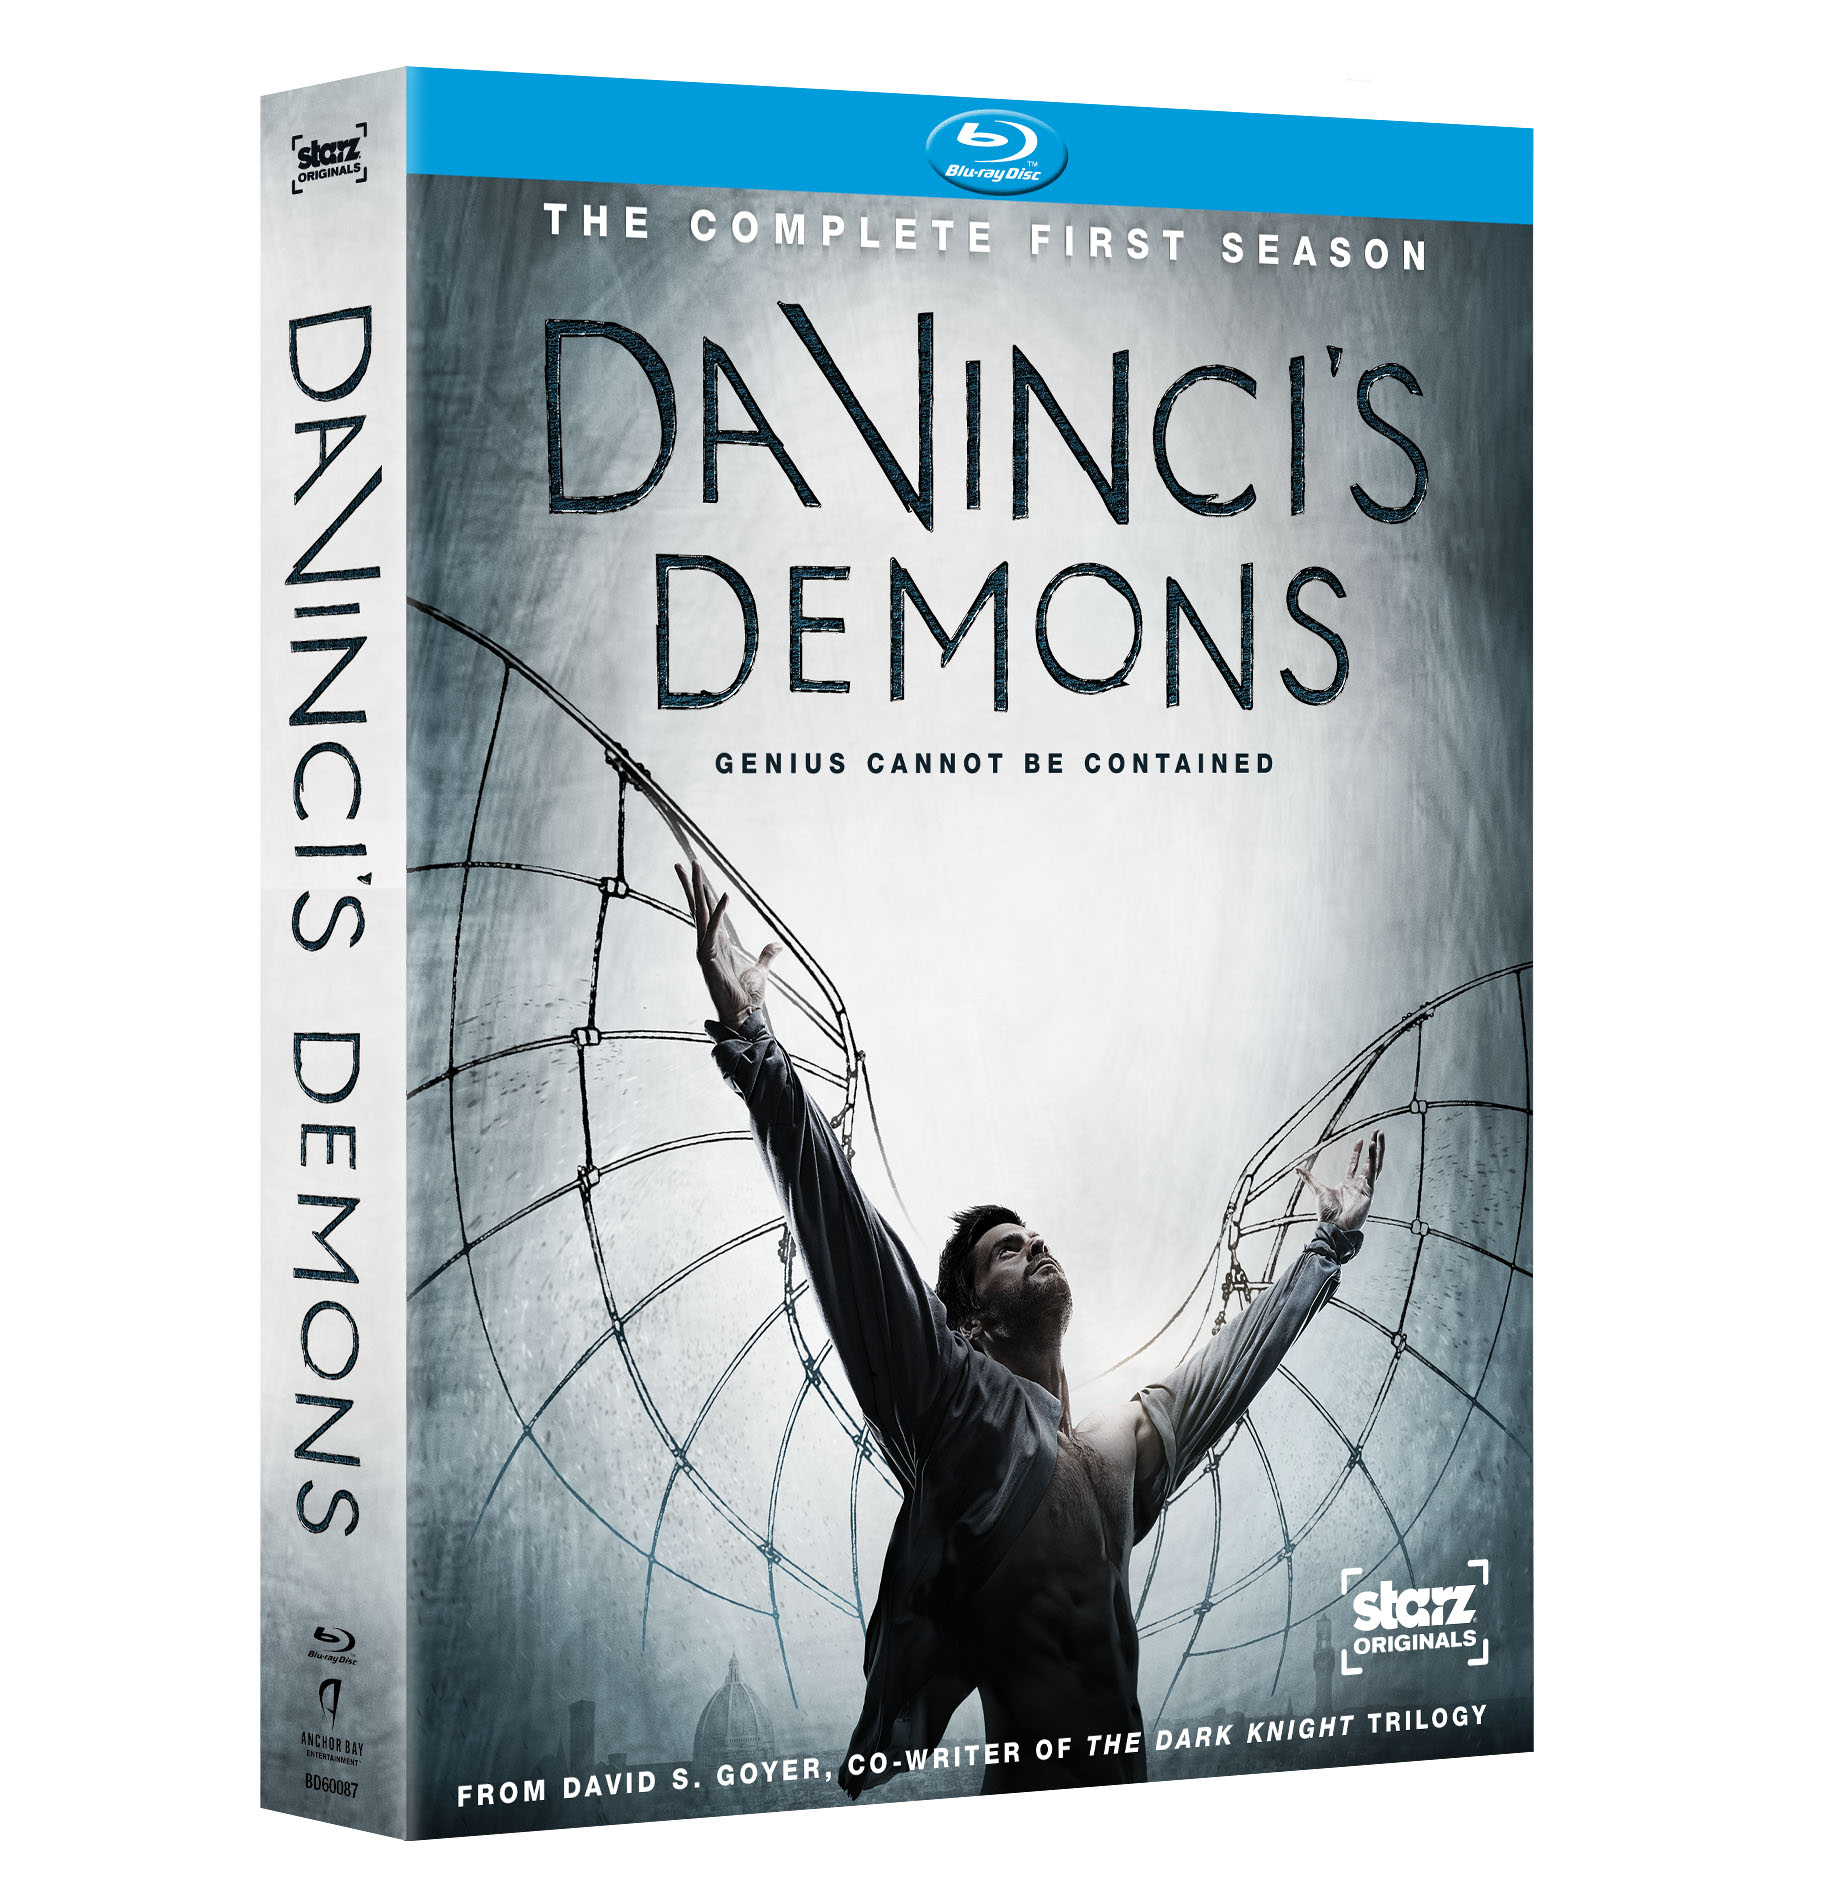 Da Vincis Demons BD 3D Da Vincis Demons The Complete First Season Coming to DVD and Blu ray Sept. 3